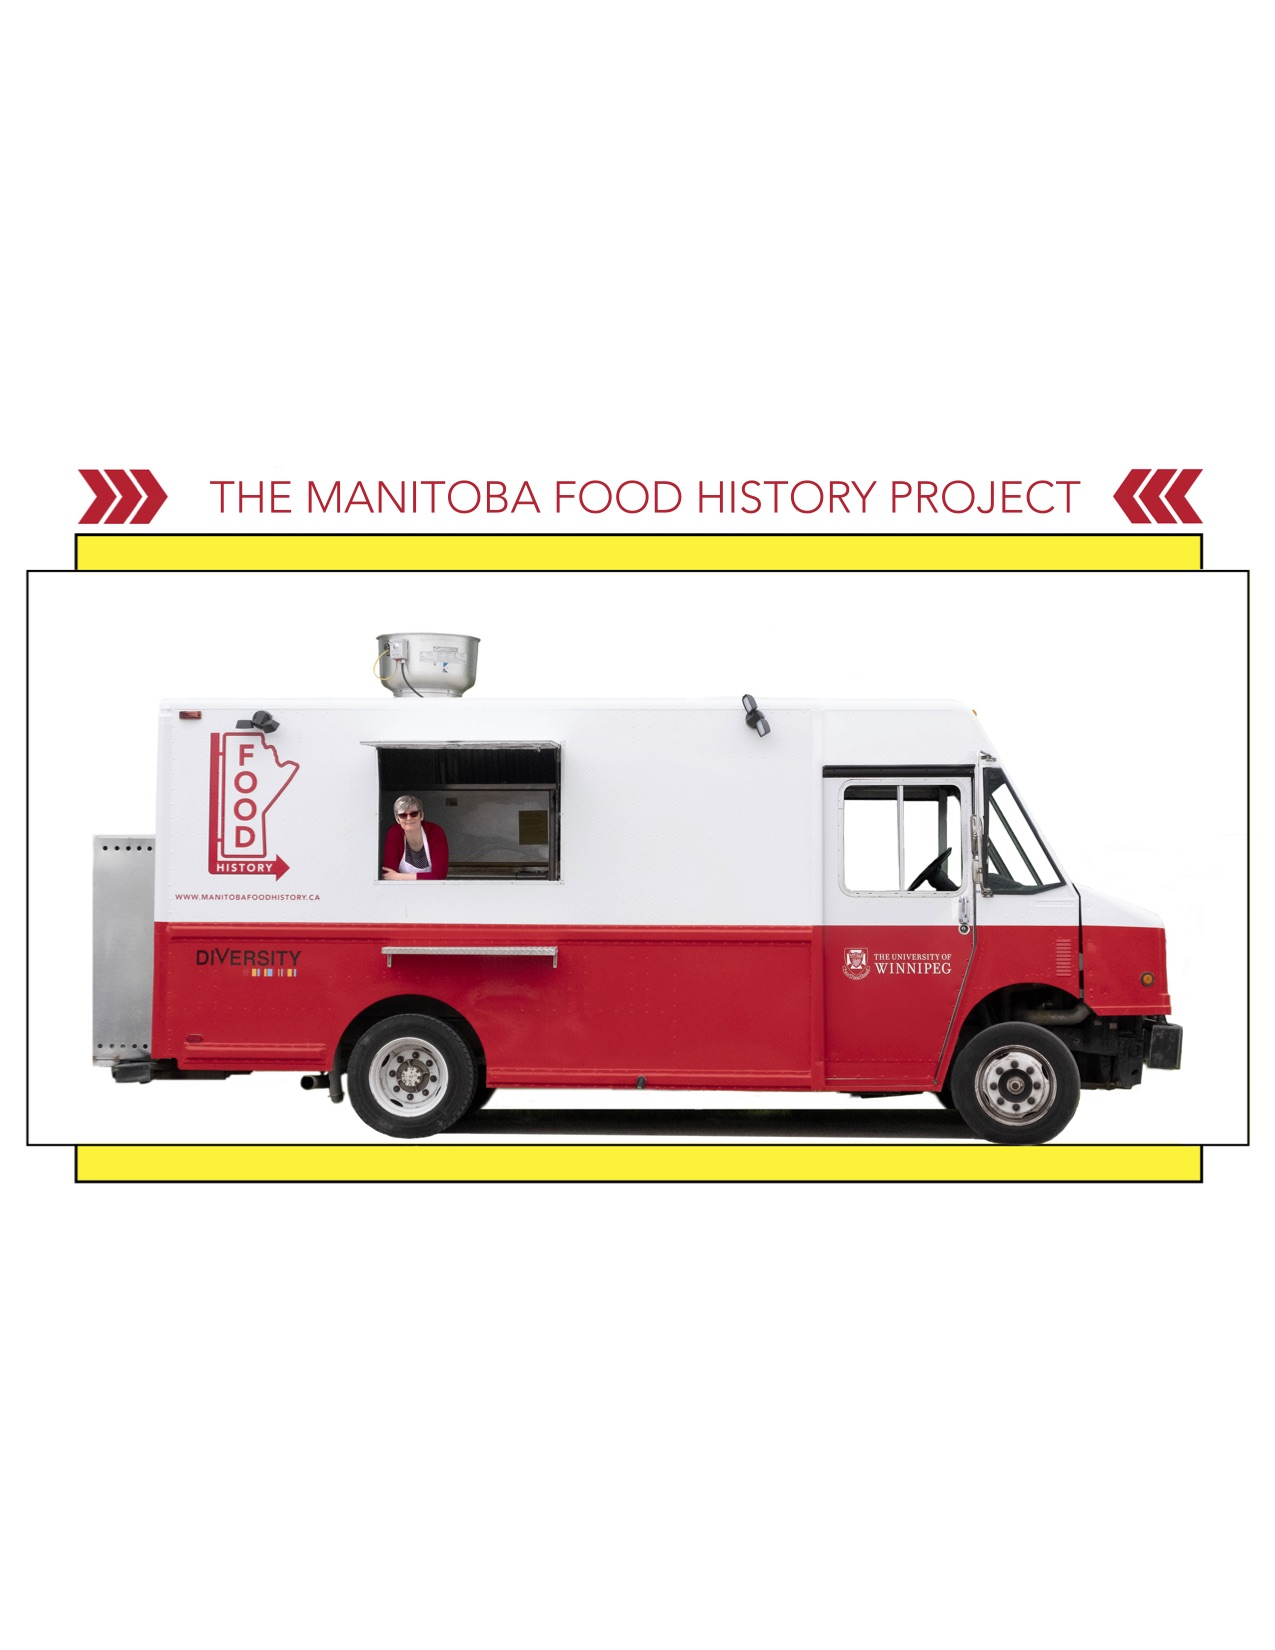 Janis Thiessen inside the Manitoba Food History Truck. Photo and design by Kimberley Moore.